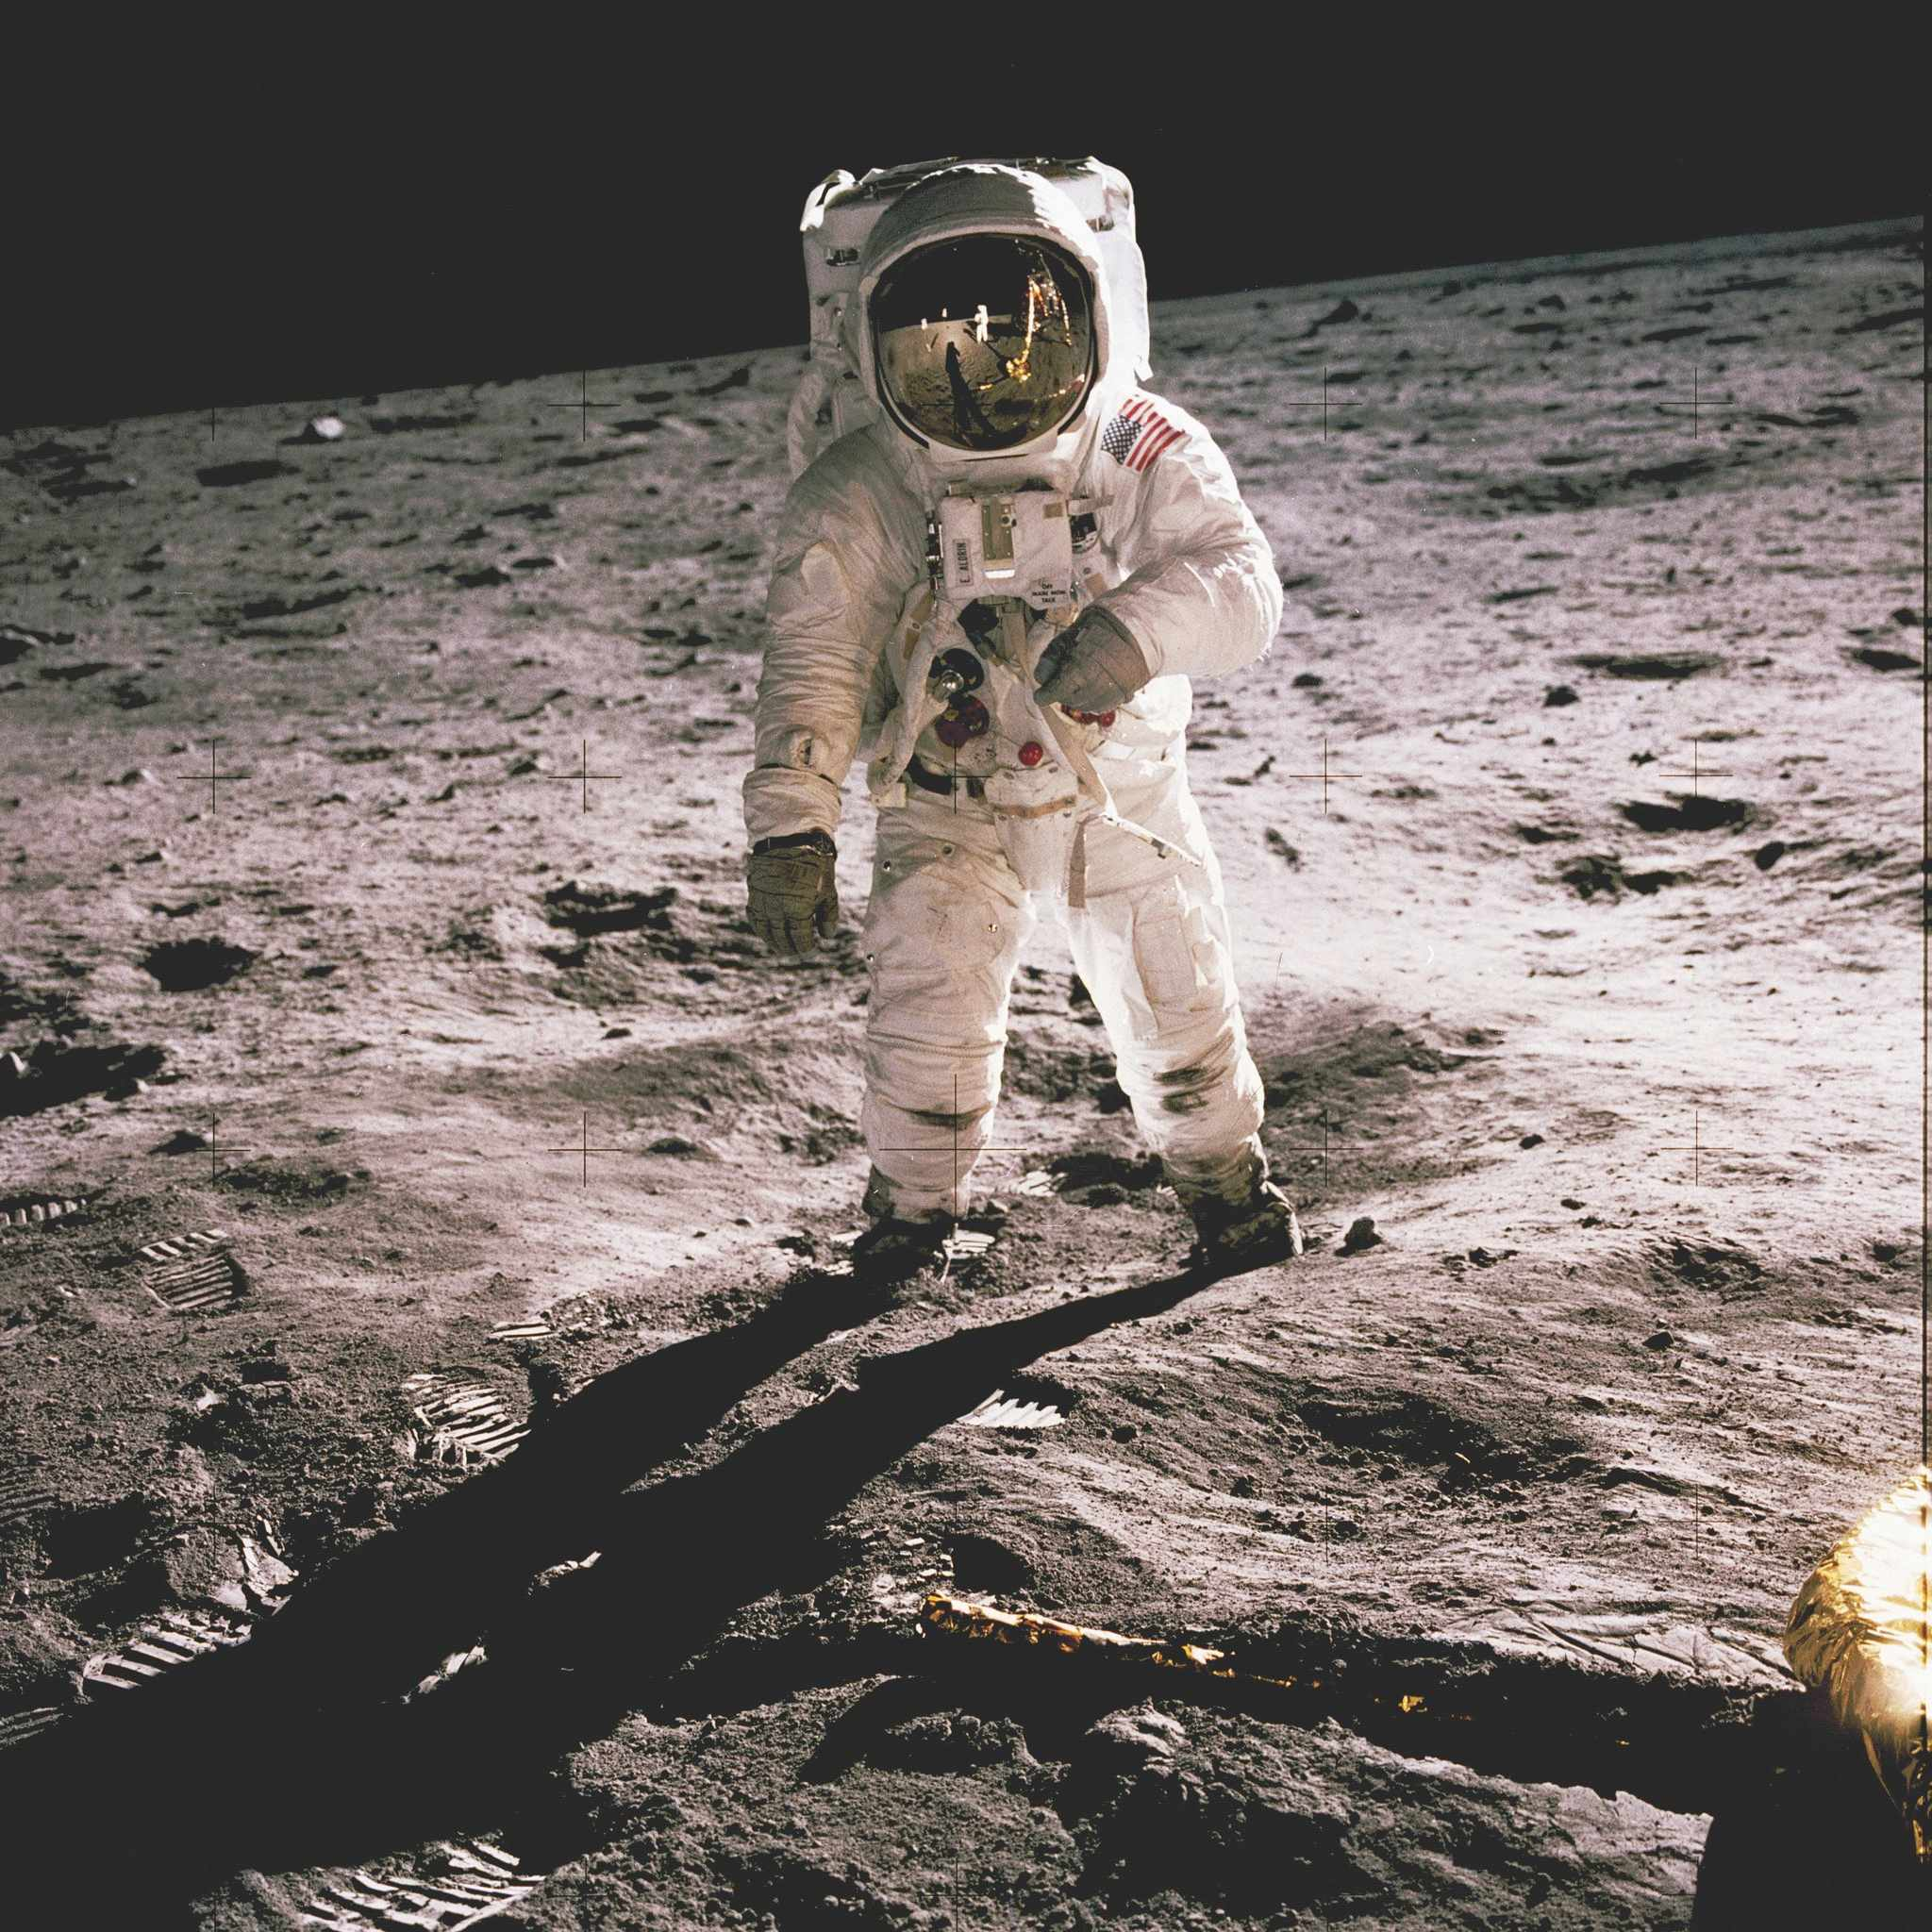 Aldrin photographed by Armstrong during their moonwalk © NASA/JSC